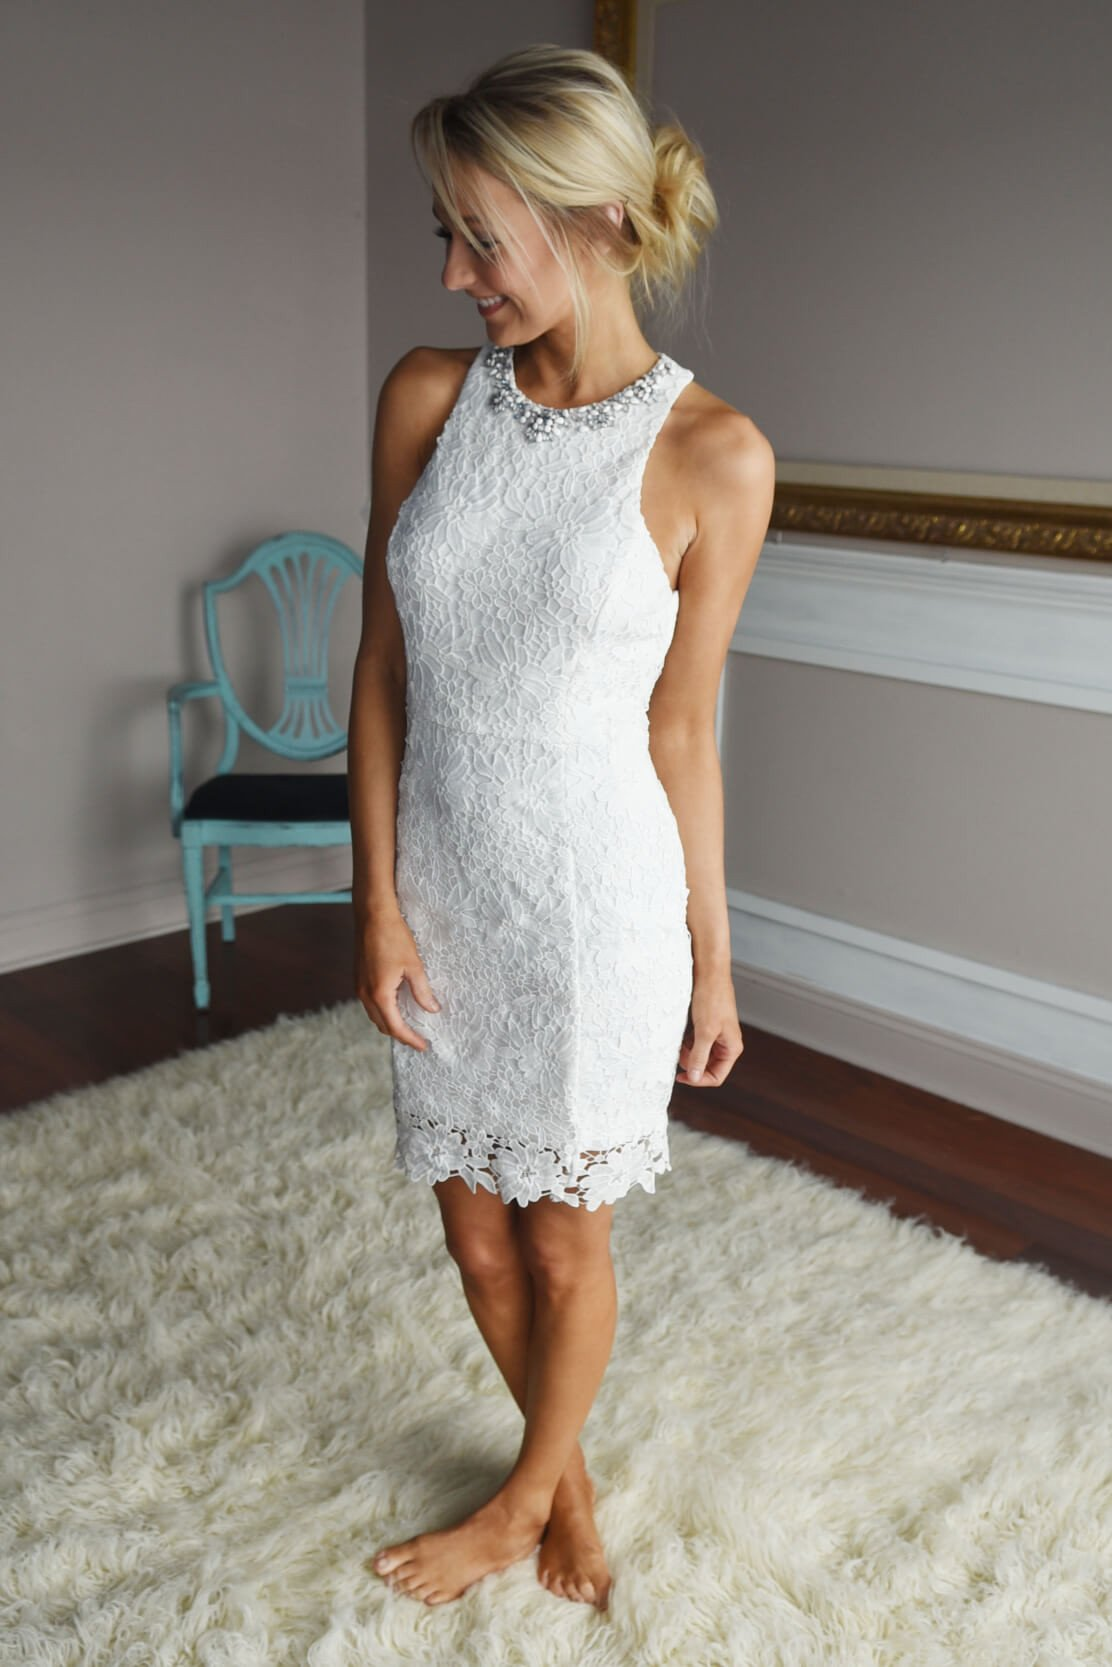 Irresistible in Lace ~ White